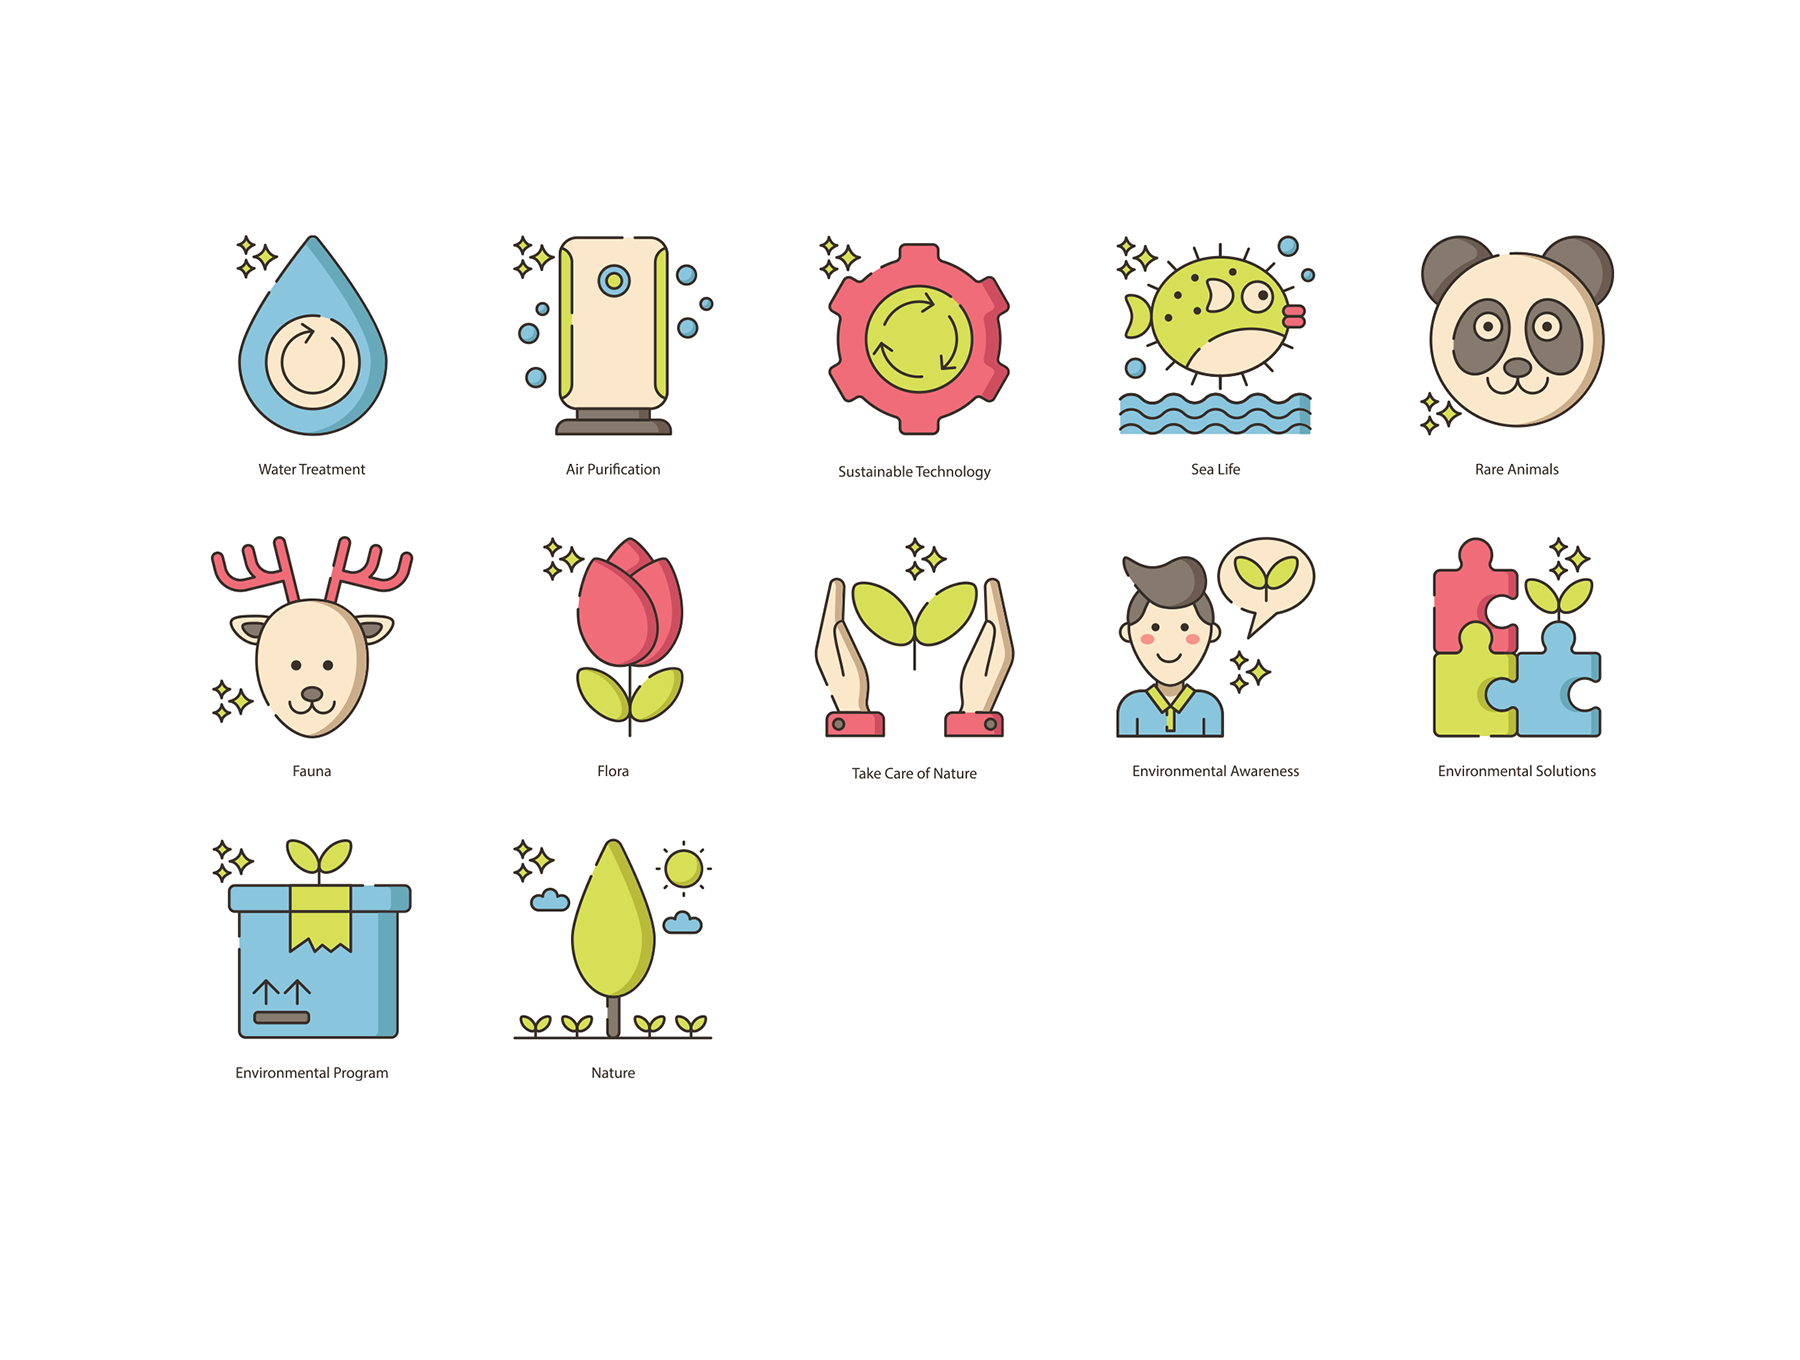 ecology-icons-ui8-detail-image-2_1544766187726.png